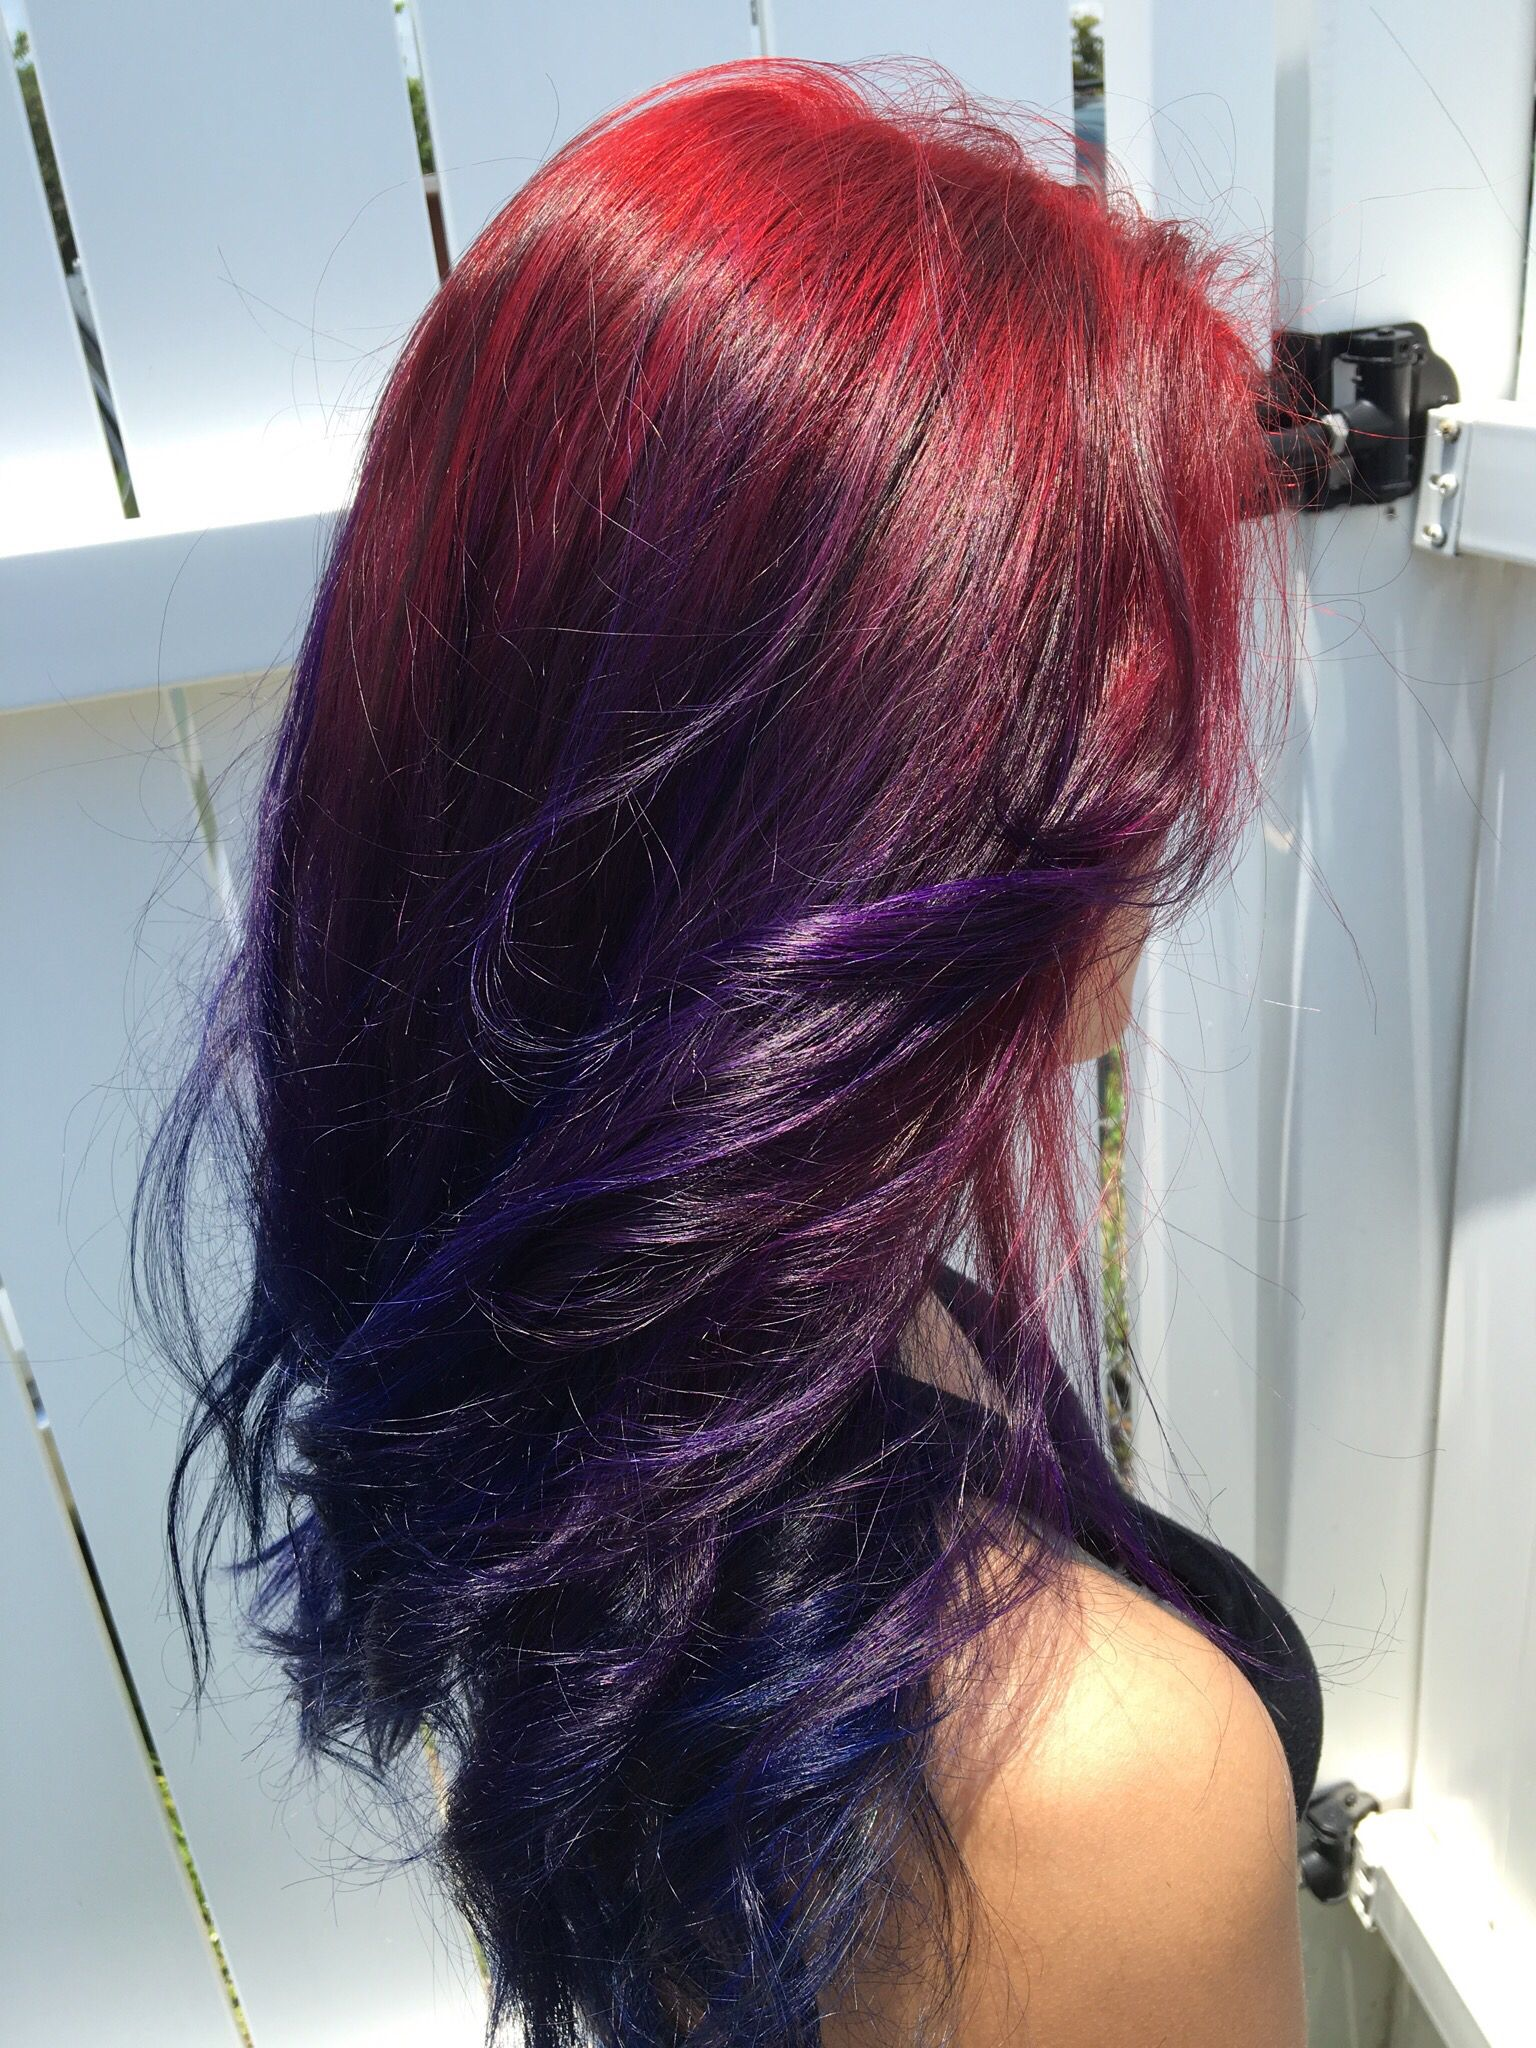 Ombre Starting With Red Violet Into Purple Then Deep Blue Hair Colors Fun Abstract